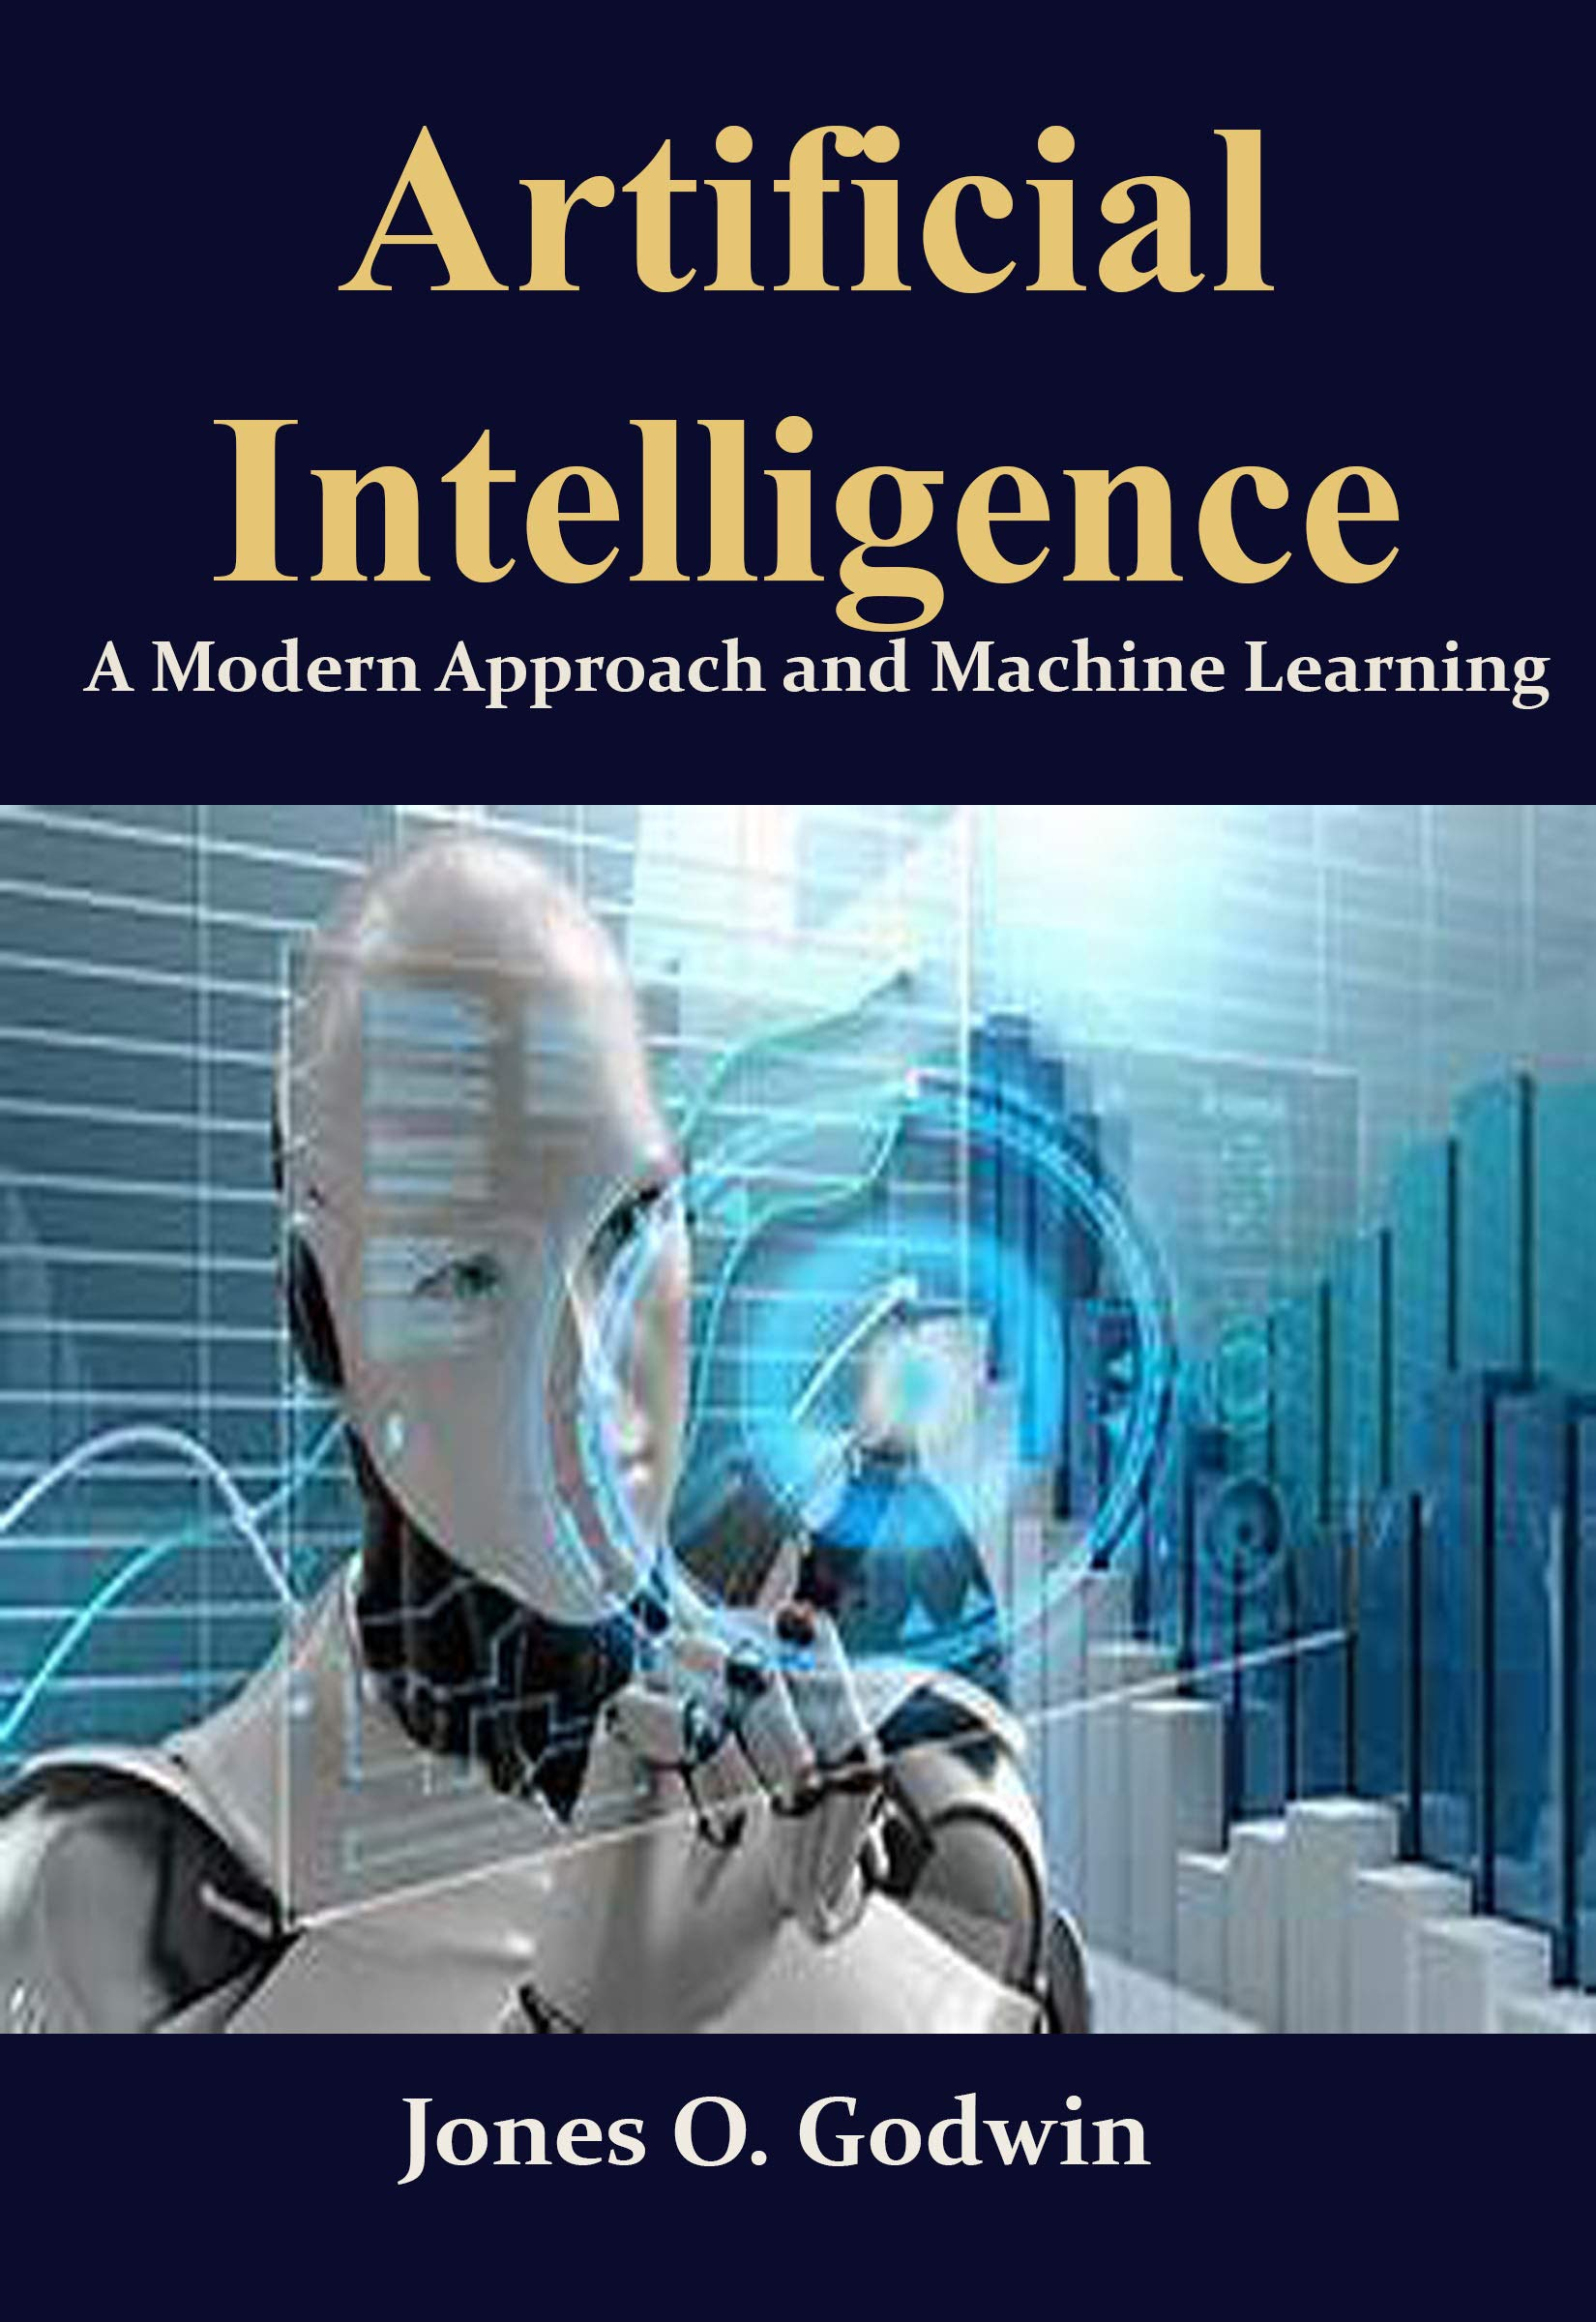 Artificial Intelligence: A Modern Approach and Machine Learning